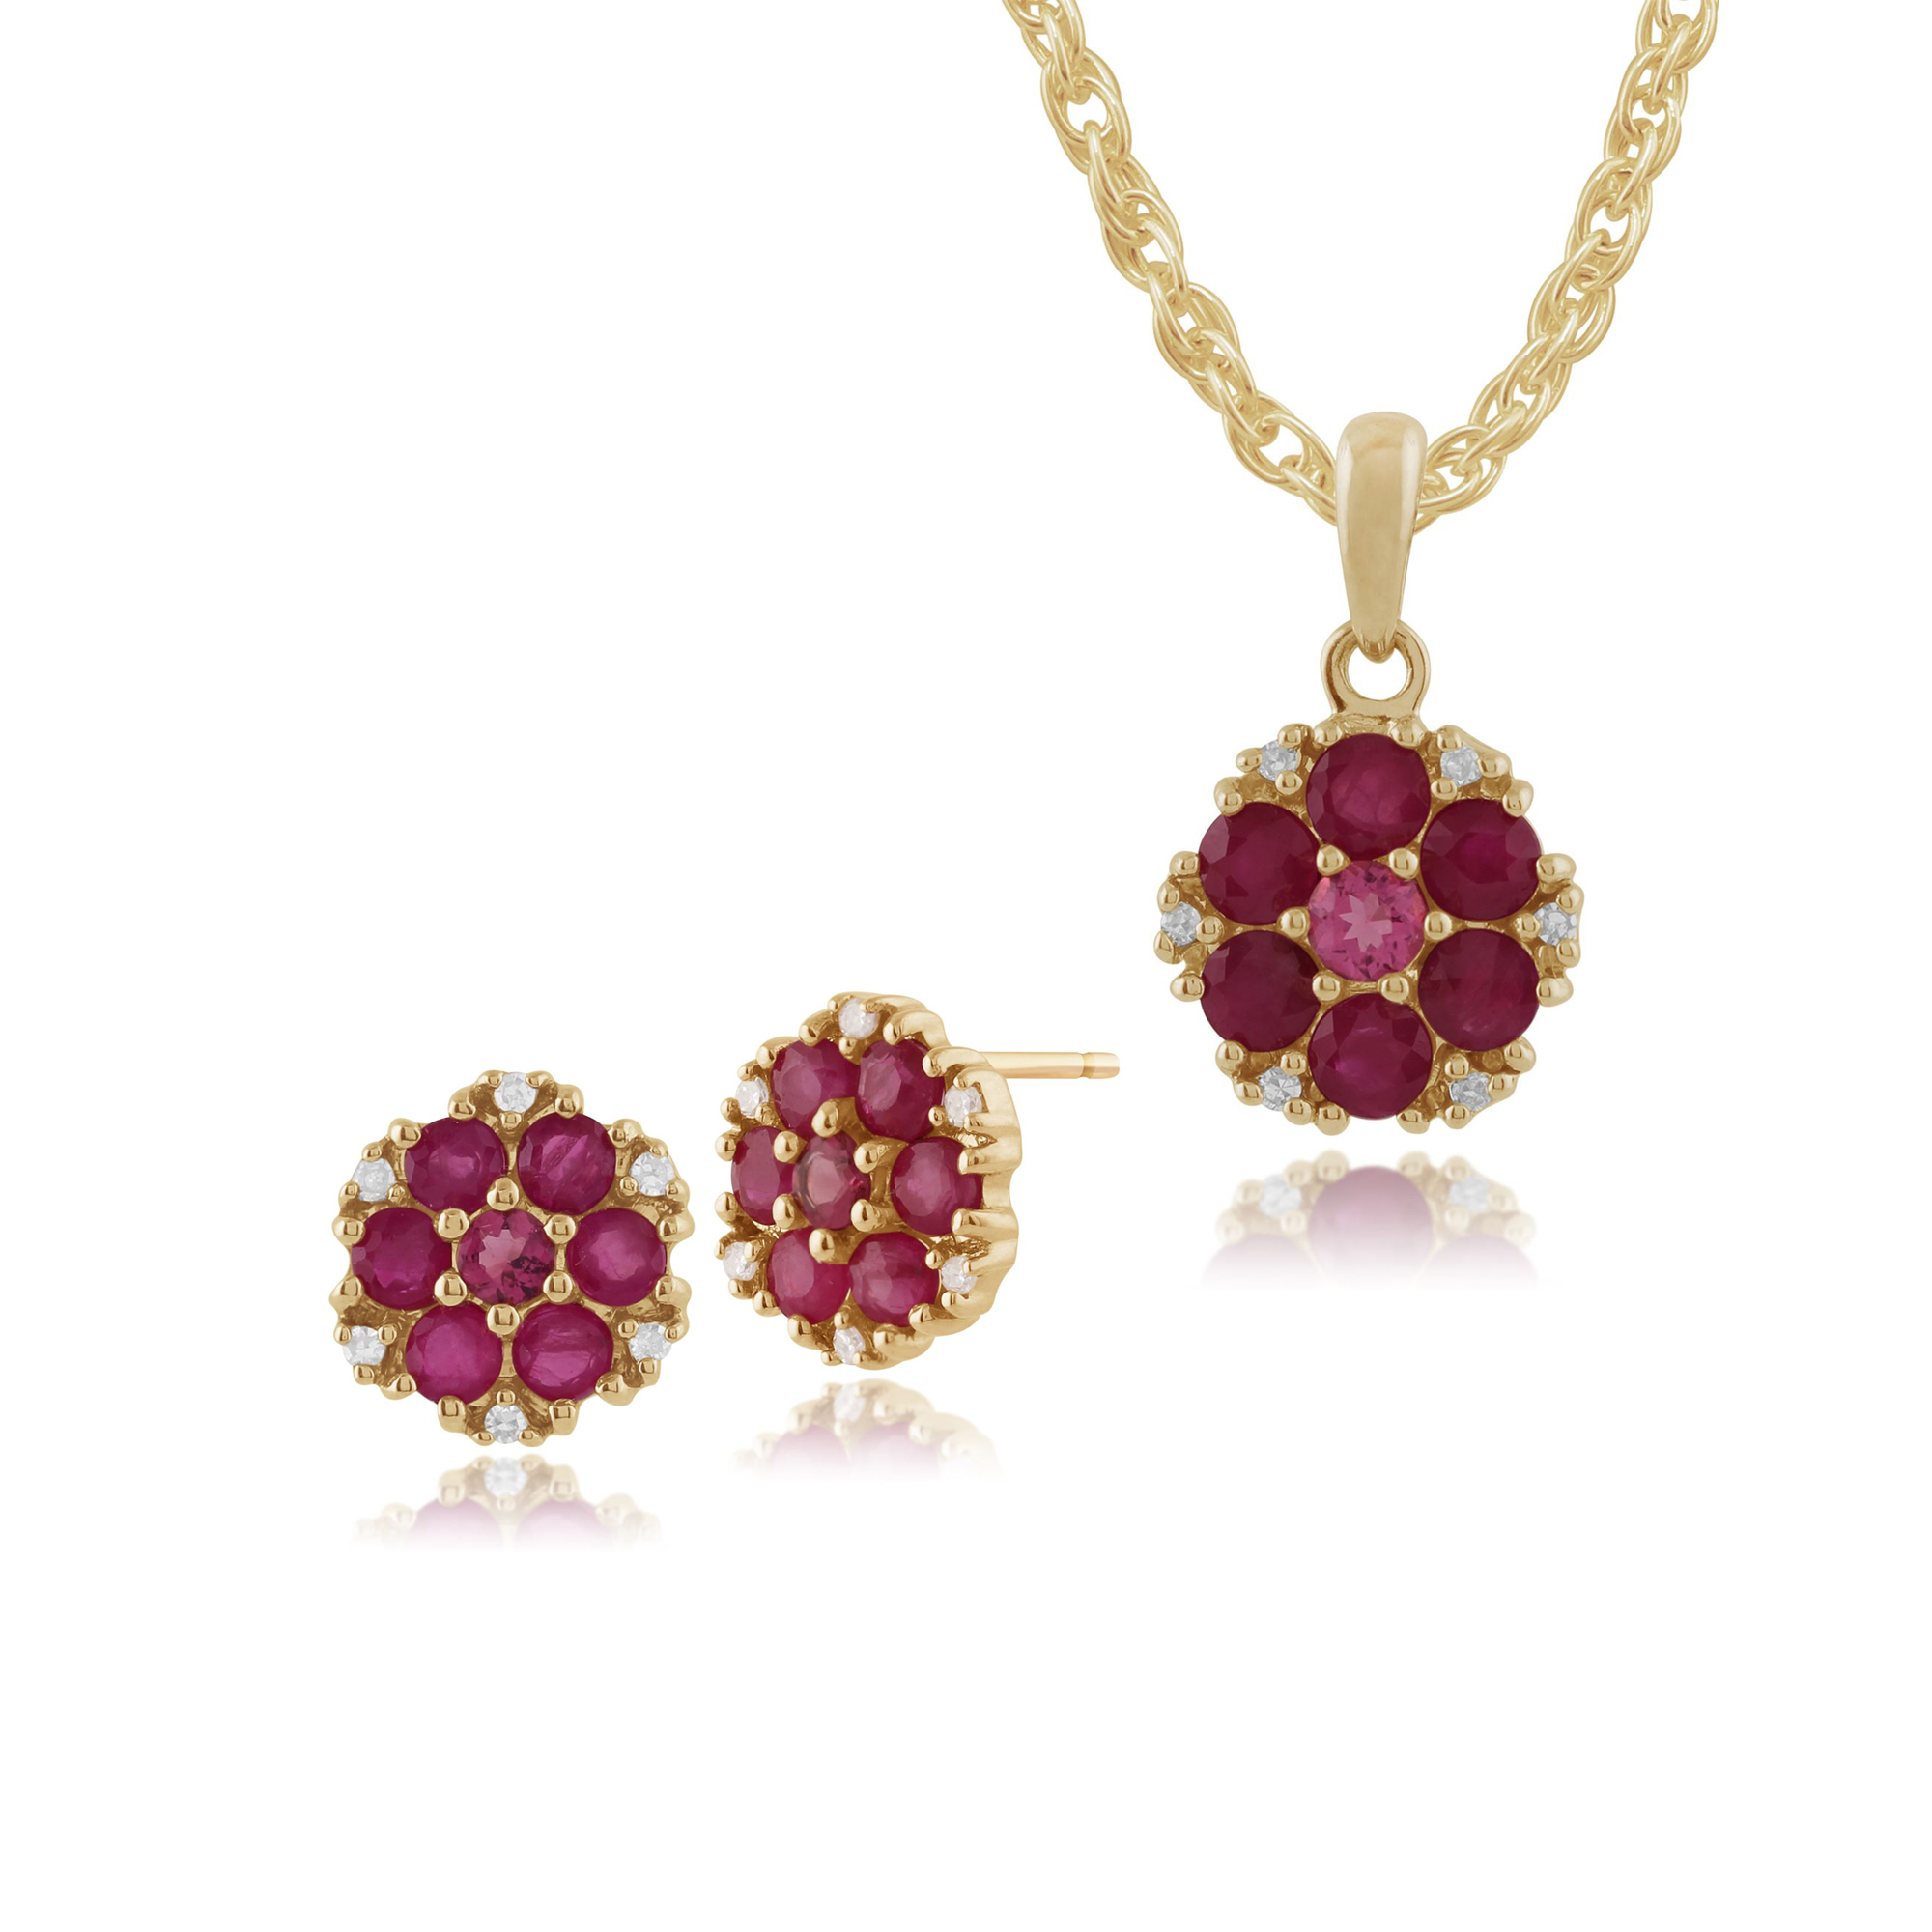 9ct Yellow Gold Ruby, Tourmaline & Diamond Stud Earrings & 45cm Necklace Set